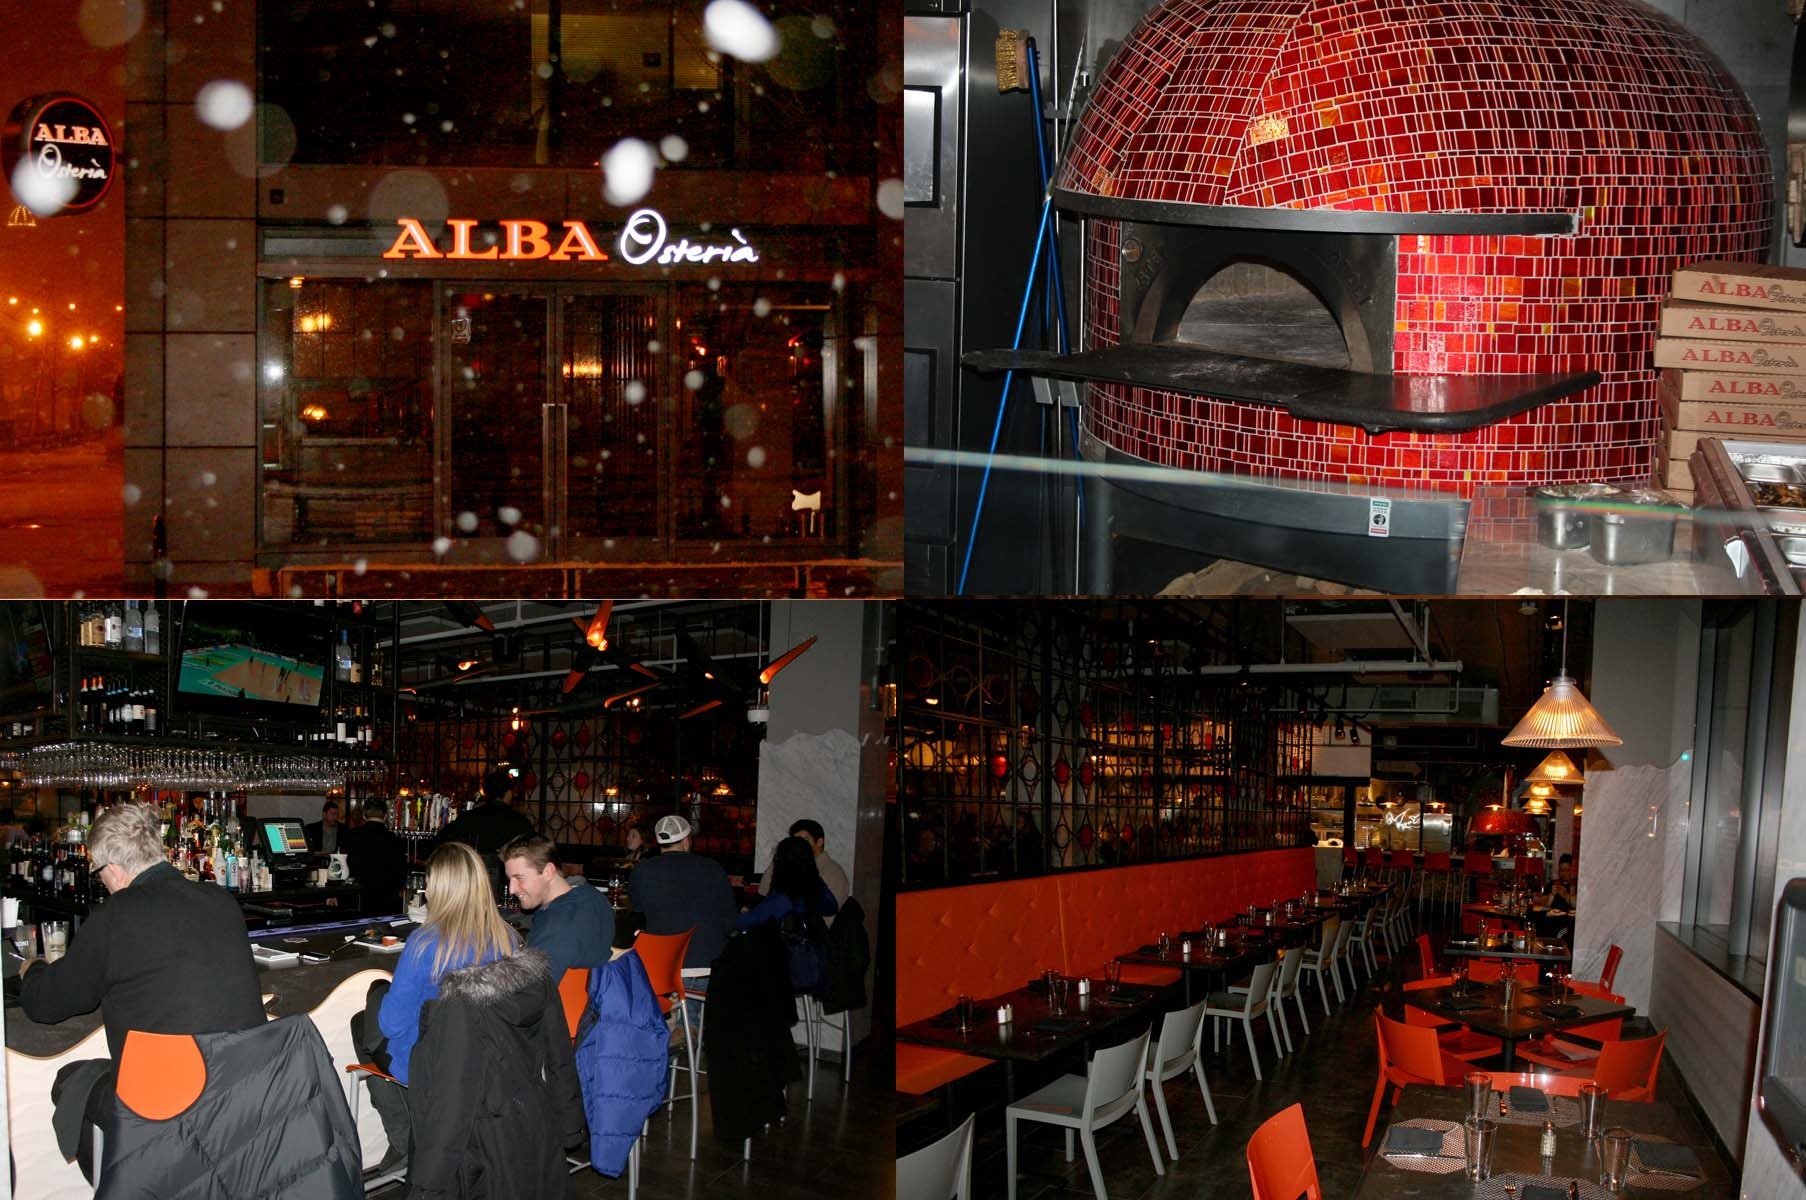 Alba Osteria (clockwise from upper left) opened in the Mount Vernon Triangle area Dec. 30.  It has a wood-burning oven from Naples, industrial dining room and bar in the center of the restaurant. (Photos: Mark Heckathorn/DC on Heels)